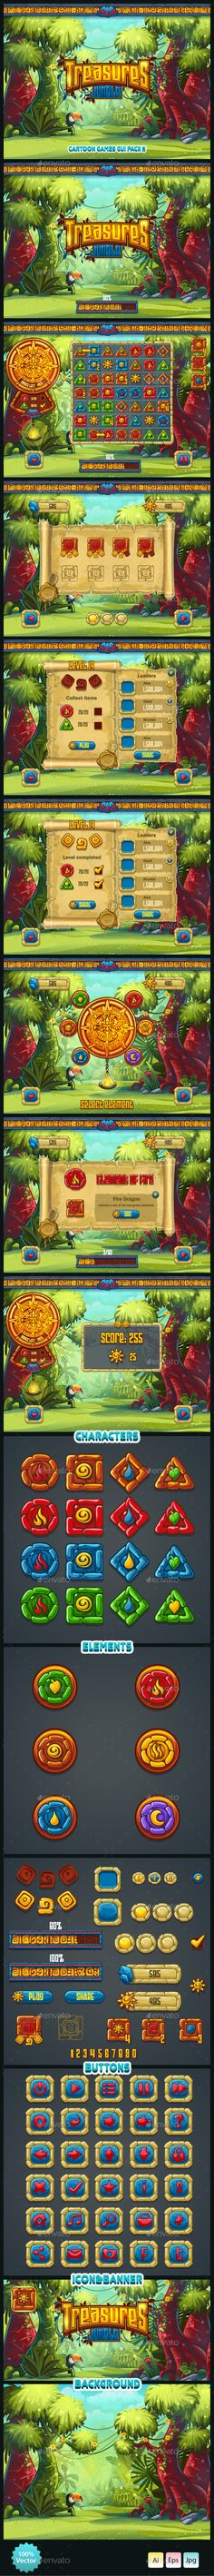 Jungle Treasures GUI. (User Interfaces)